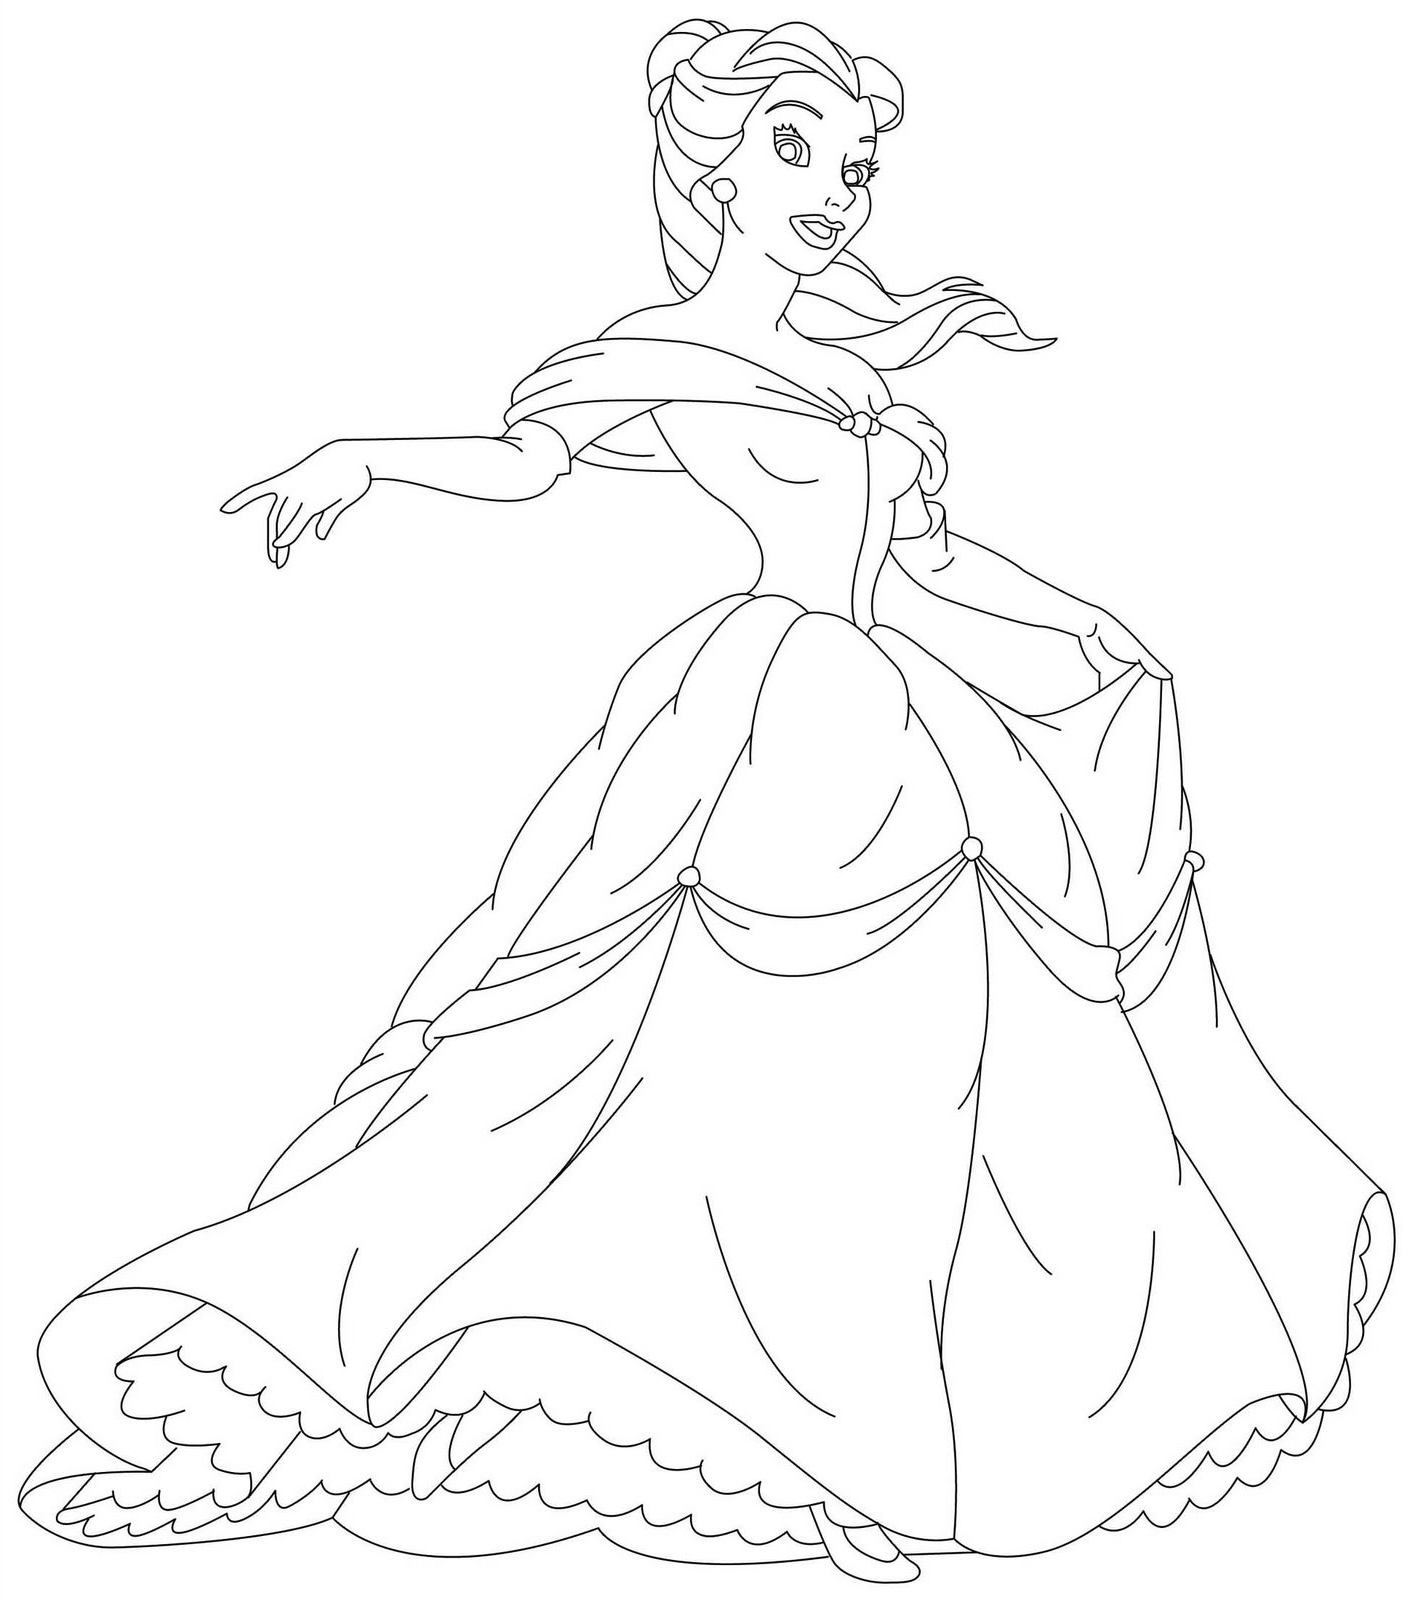 Coloring Pages Disney Princess Belle : Free printable disney princess coloring pages for kids